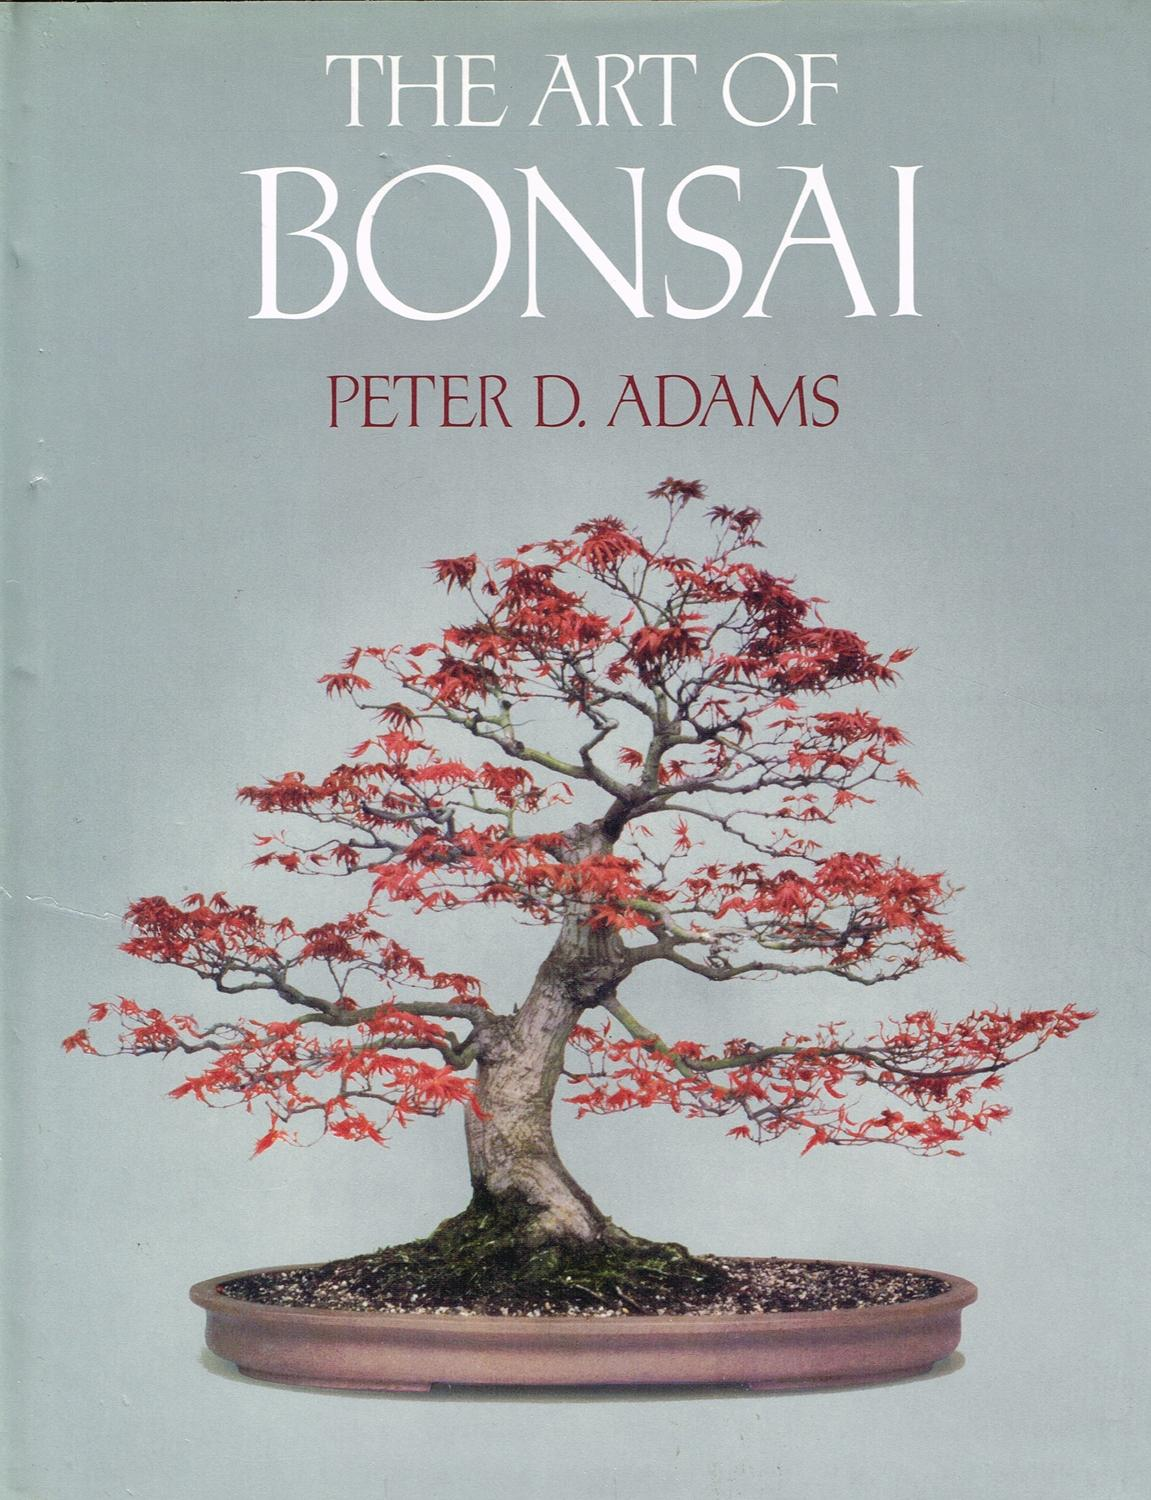 The Art Of Bonsai By Peter D Adams Fine Hardcover 1981 1st Edition Sapphire Books